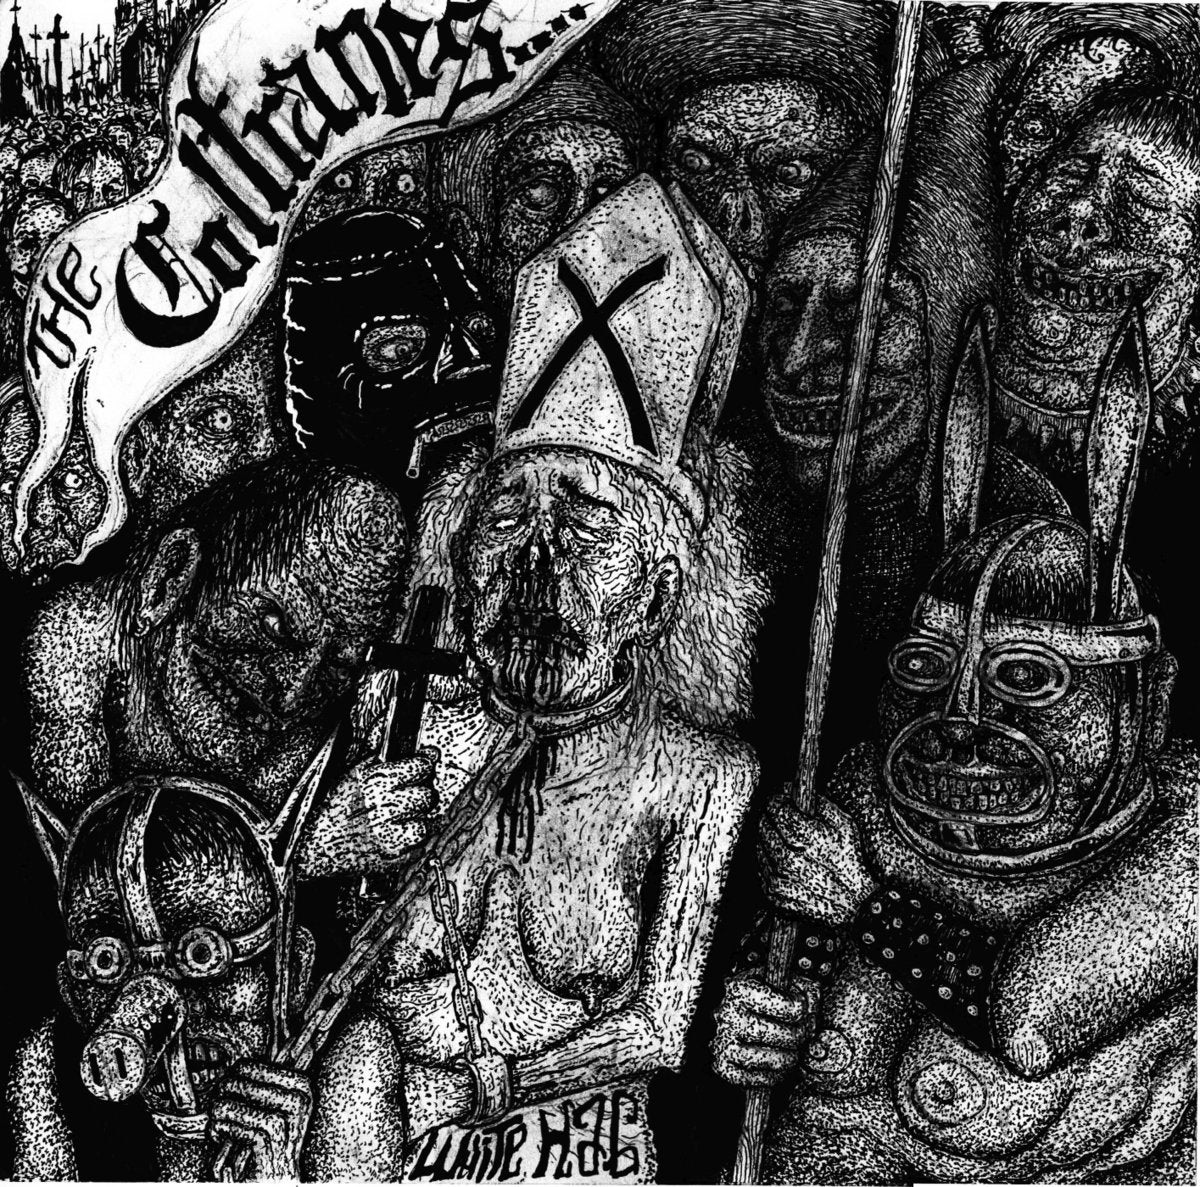 The Coltranes - White Hag LP